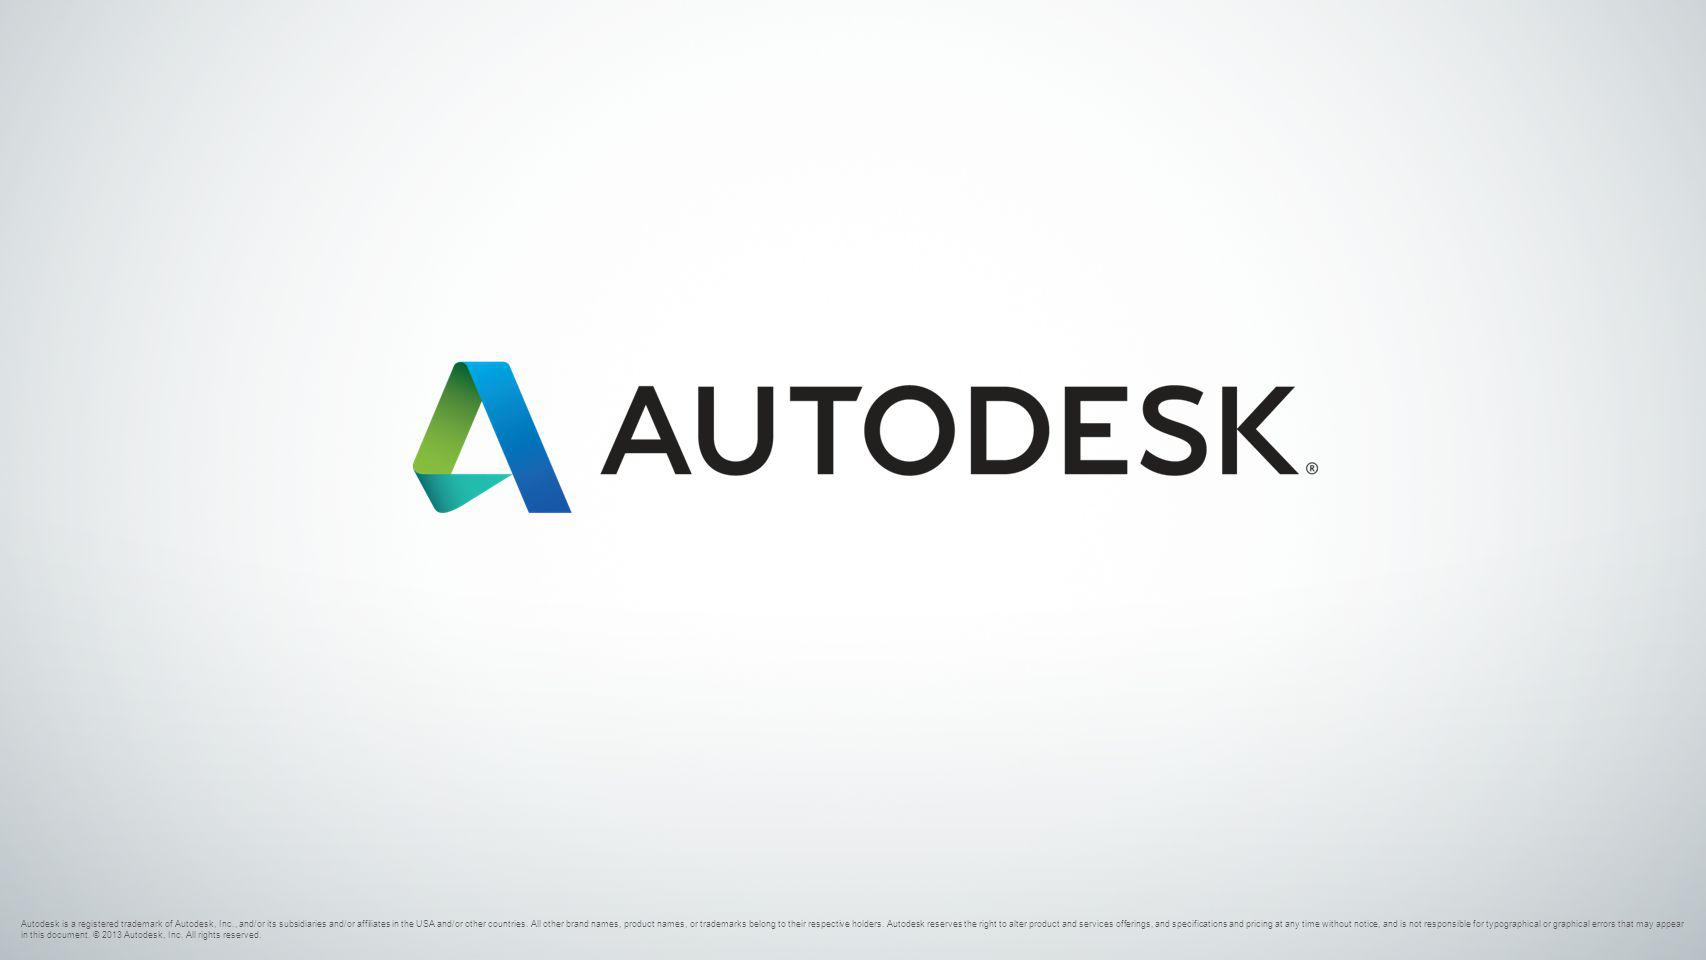 Autodesk is a registered trademark of Autodesk, Inc., and/or its subsidiaries and/or affiliates in the USA and/or other countries. All other brand nam